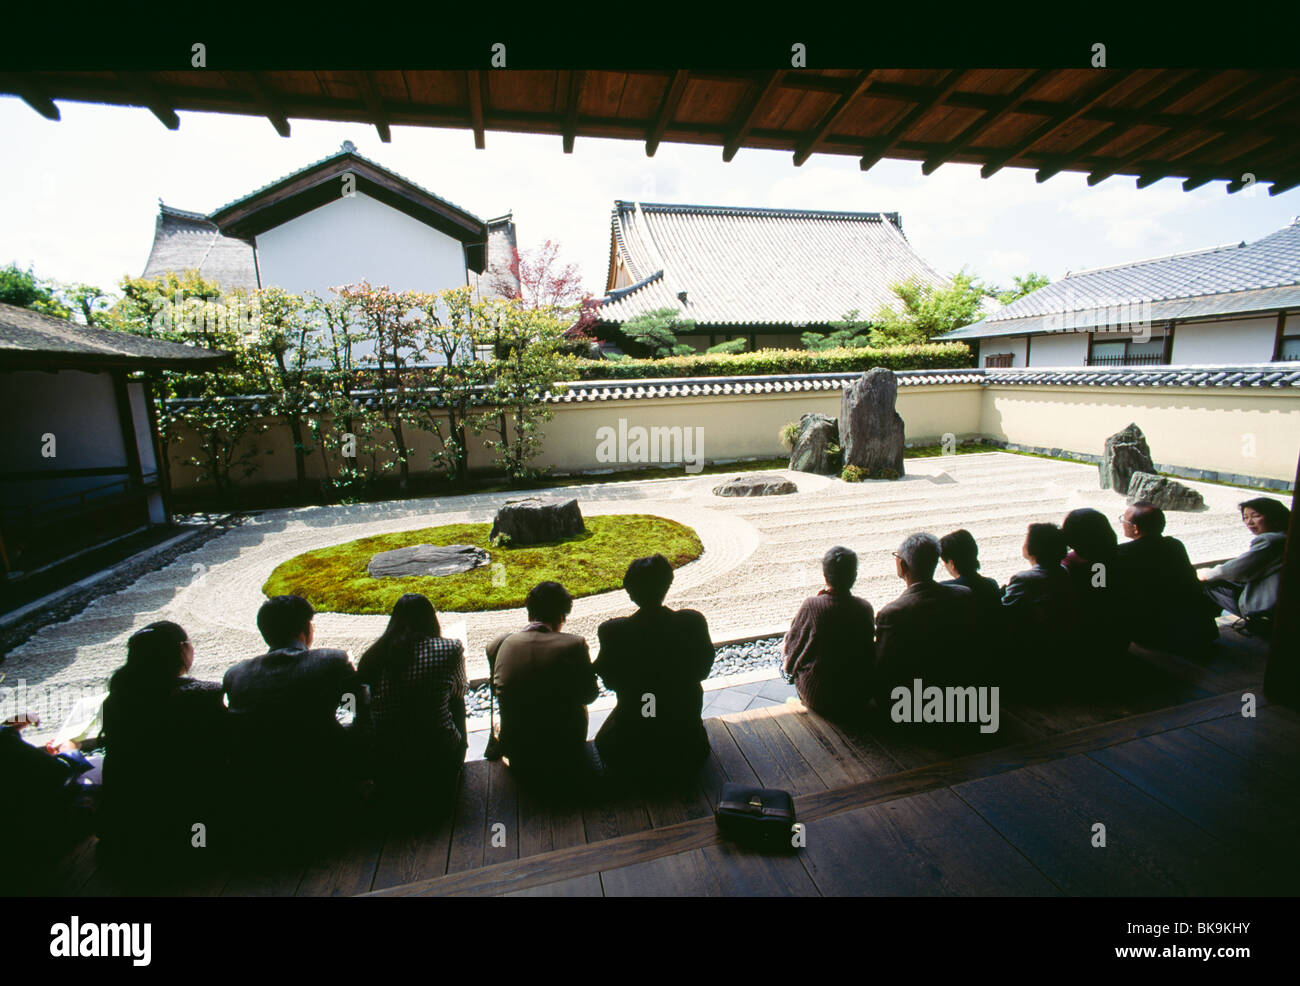 Tourists in a temple, Isshidan Rock Garden, Ryogen-In, Daitokuji Temple, Kyoto City, Kyoto Prefecture, Japan - Stock Image